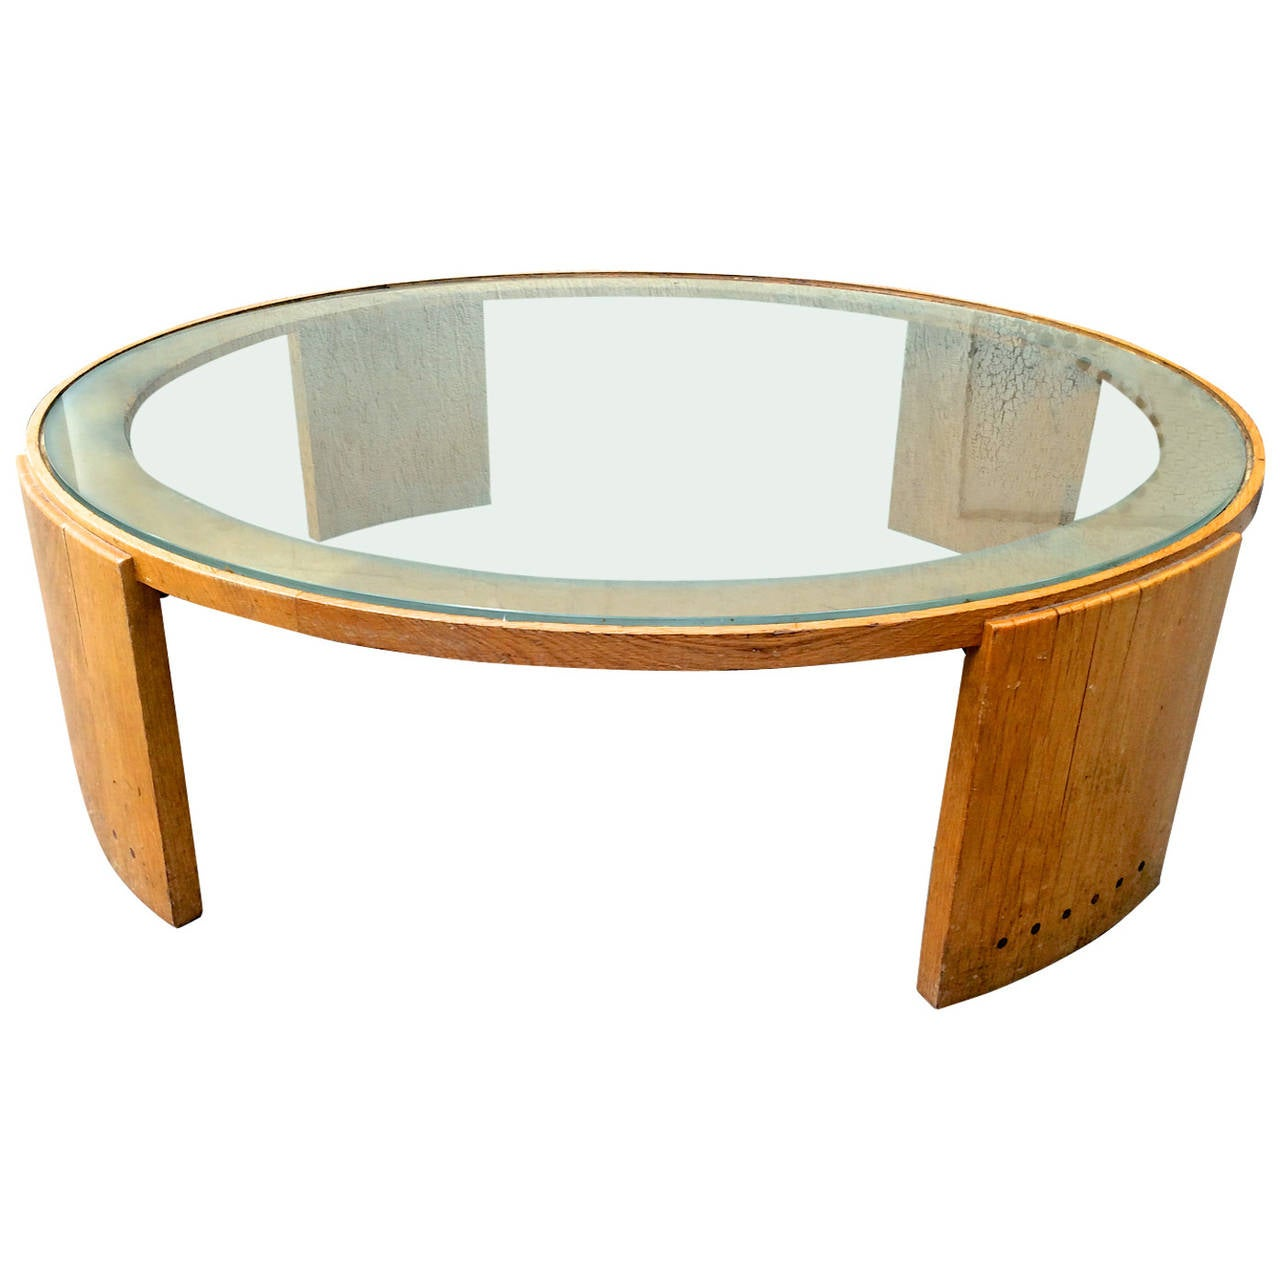 Jacques adnet very large round coffee table in oak and for Large glass table top